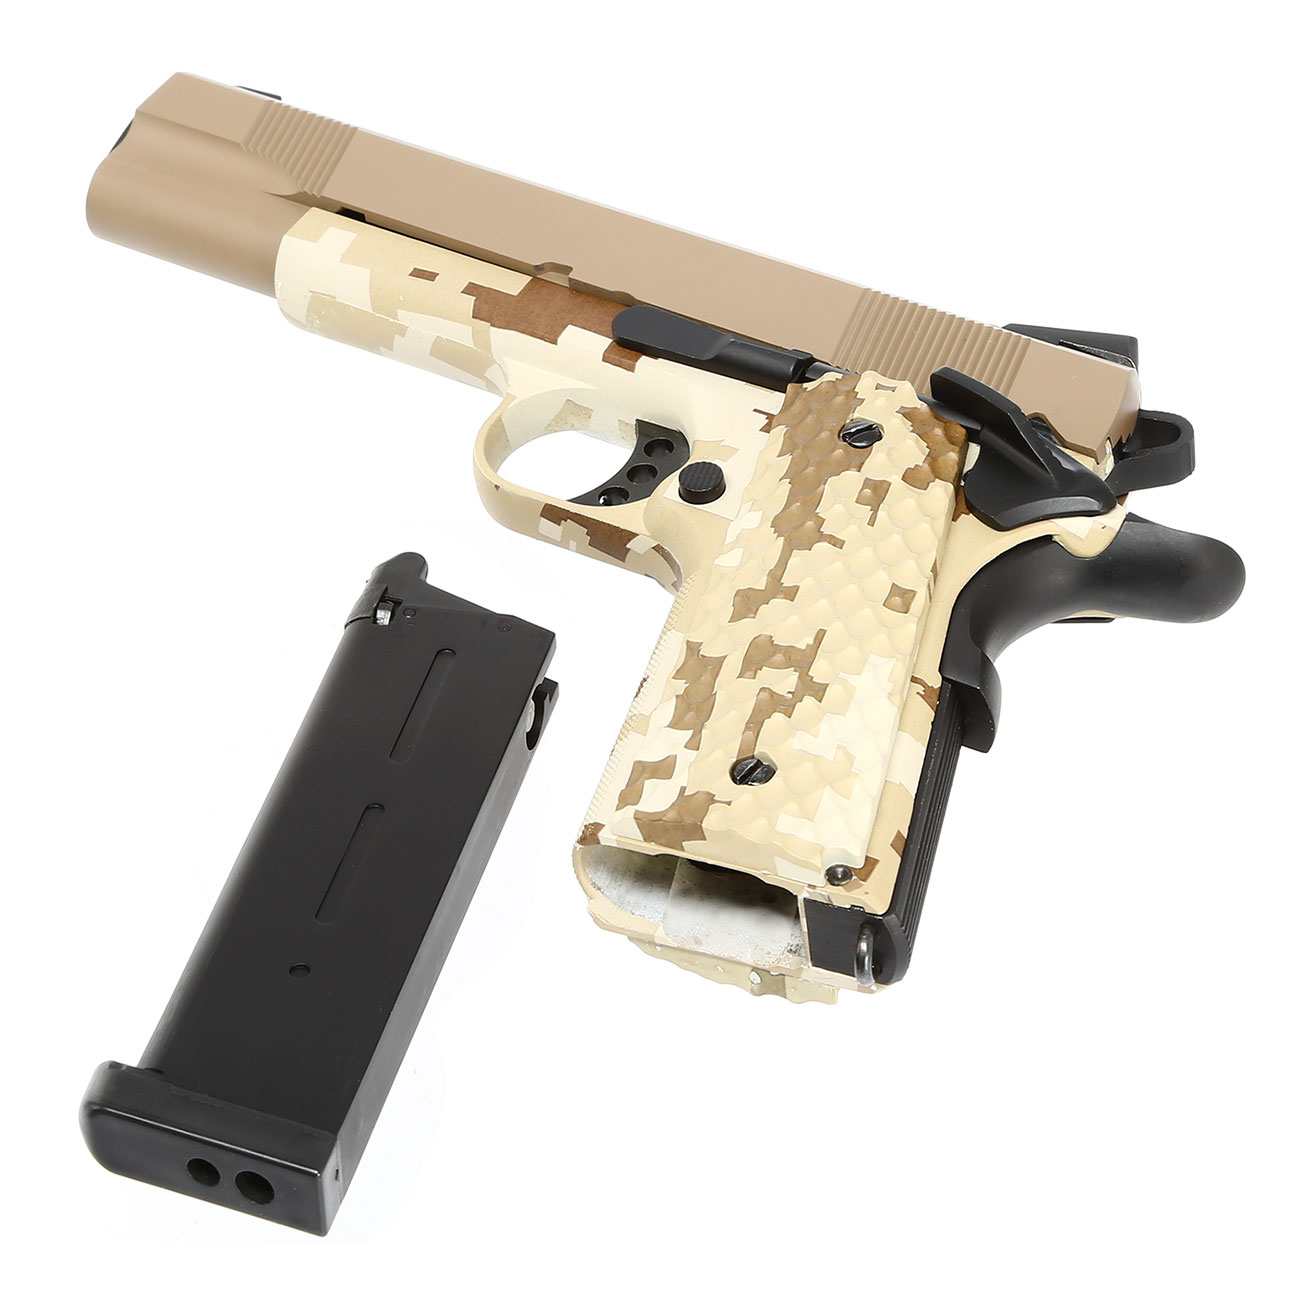 Nuprol Raven M1911 MEU Vollmetall GBB 6mm BB Tan / Digital Desert 6